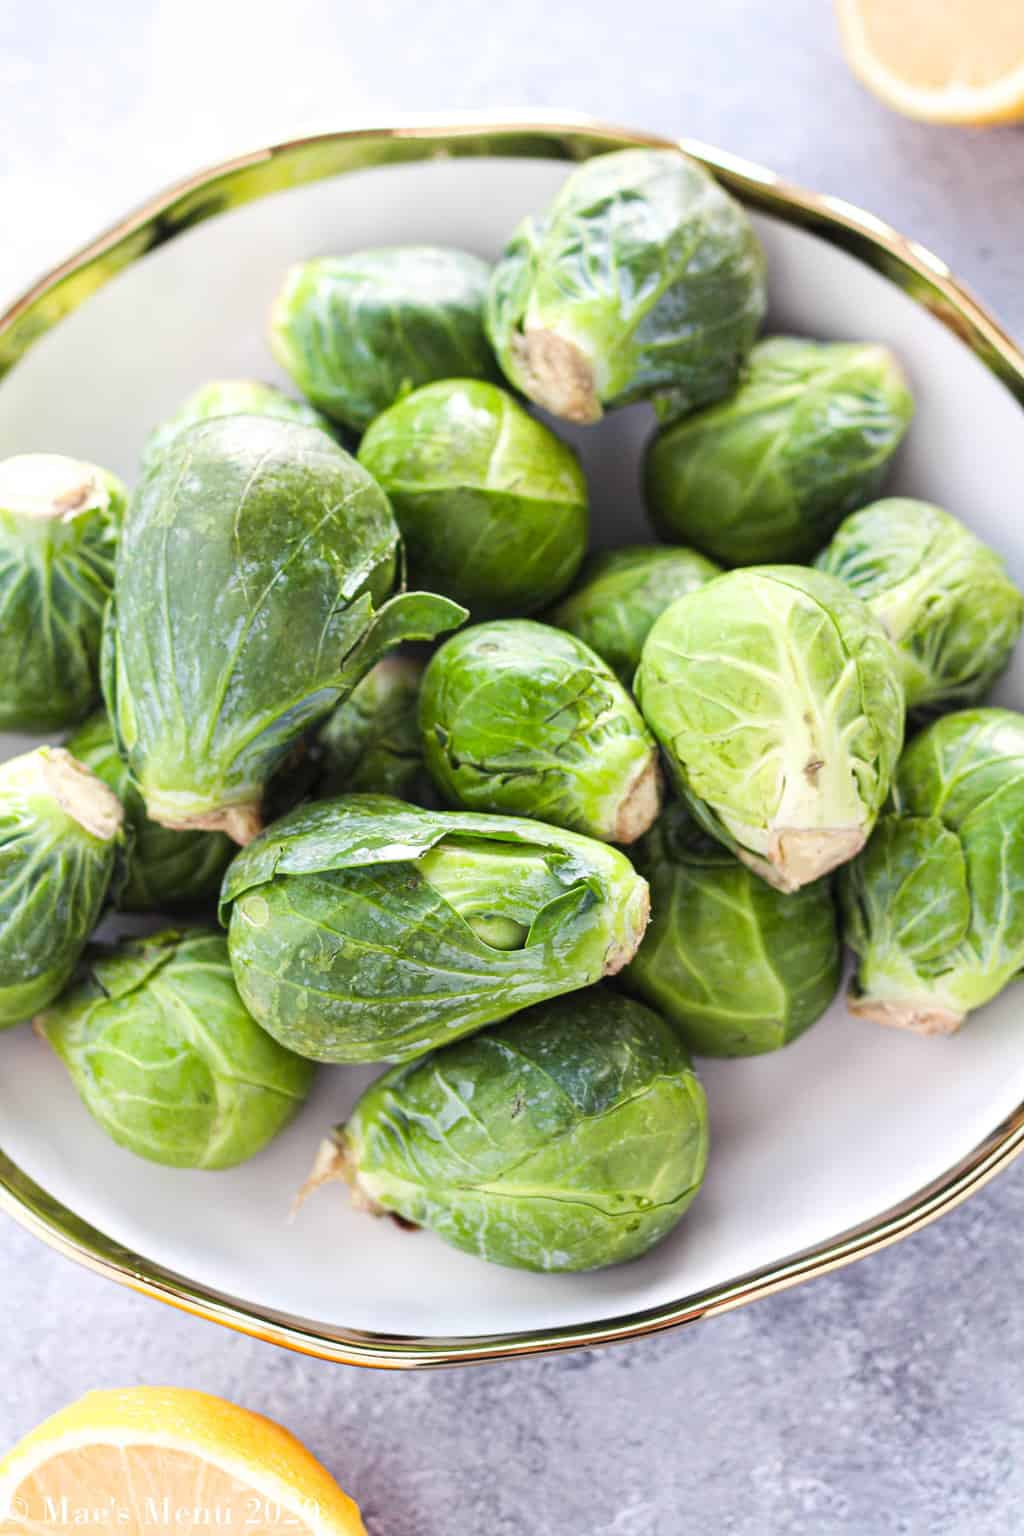 An up-close shot of a bowl of brussels sprouts with a lemon in the background